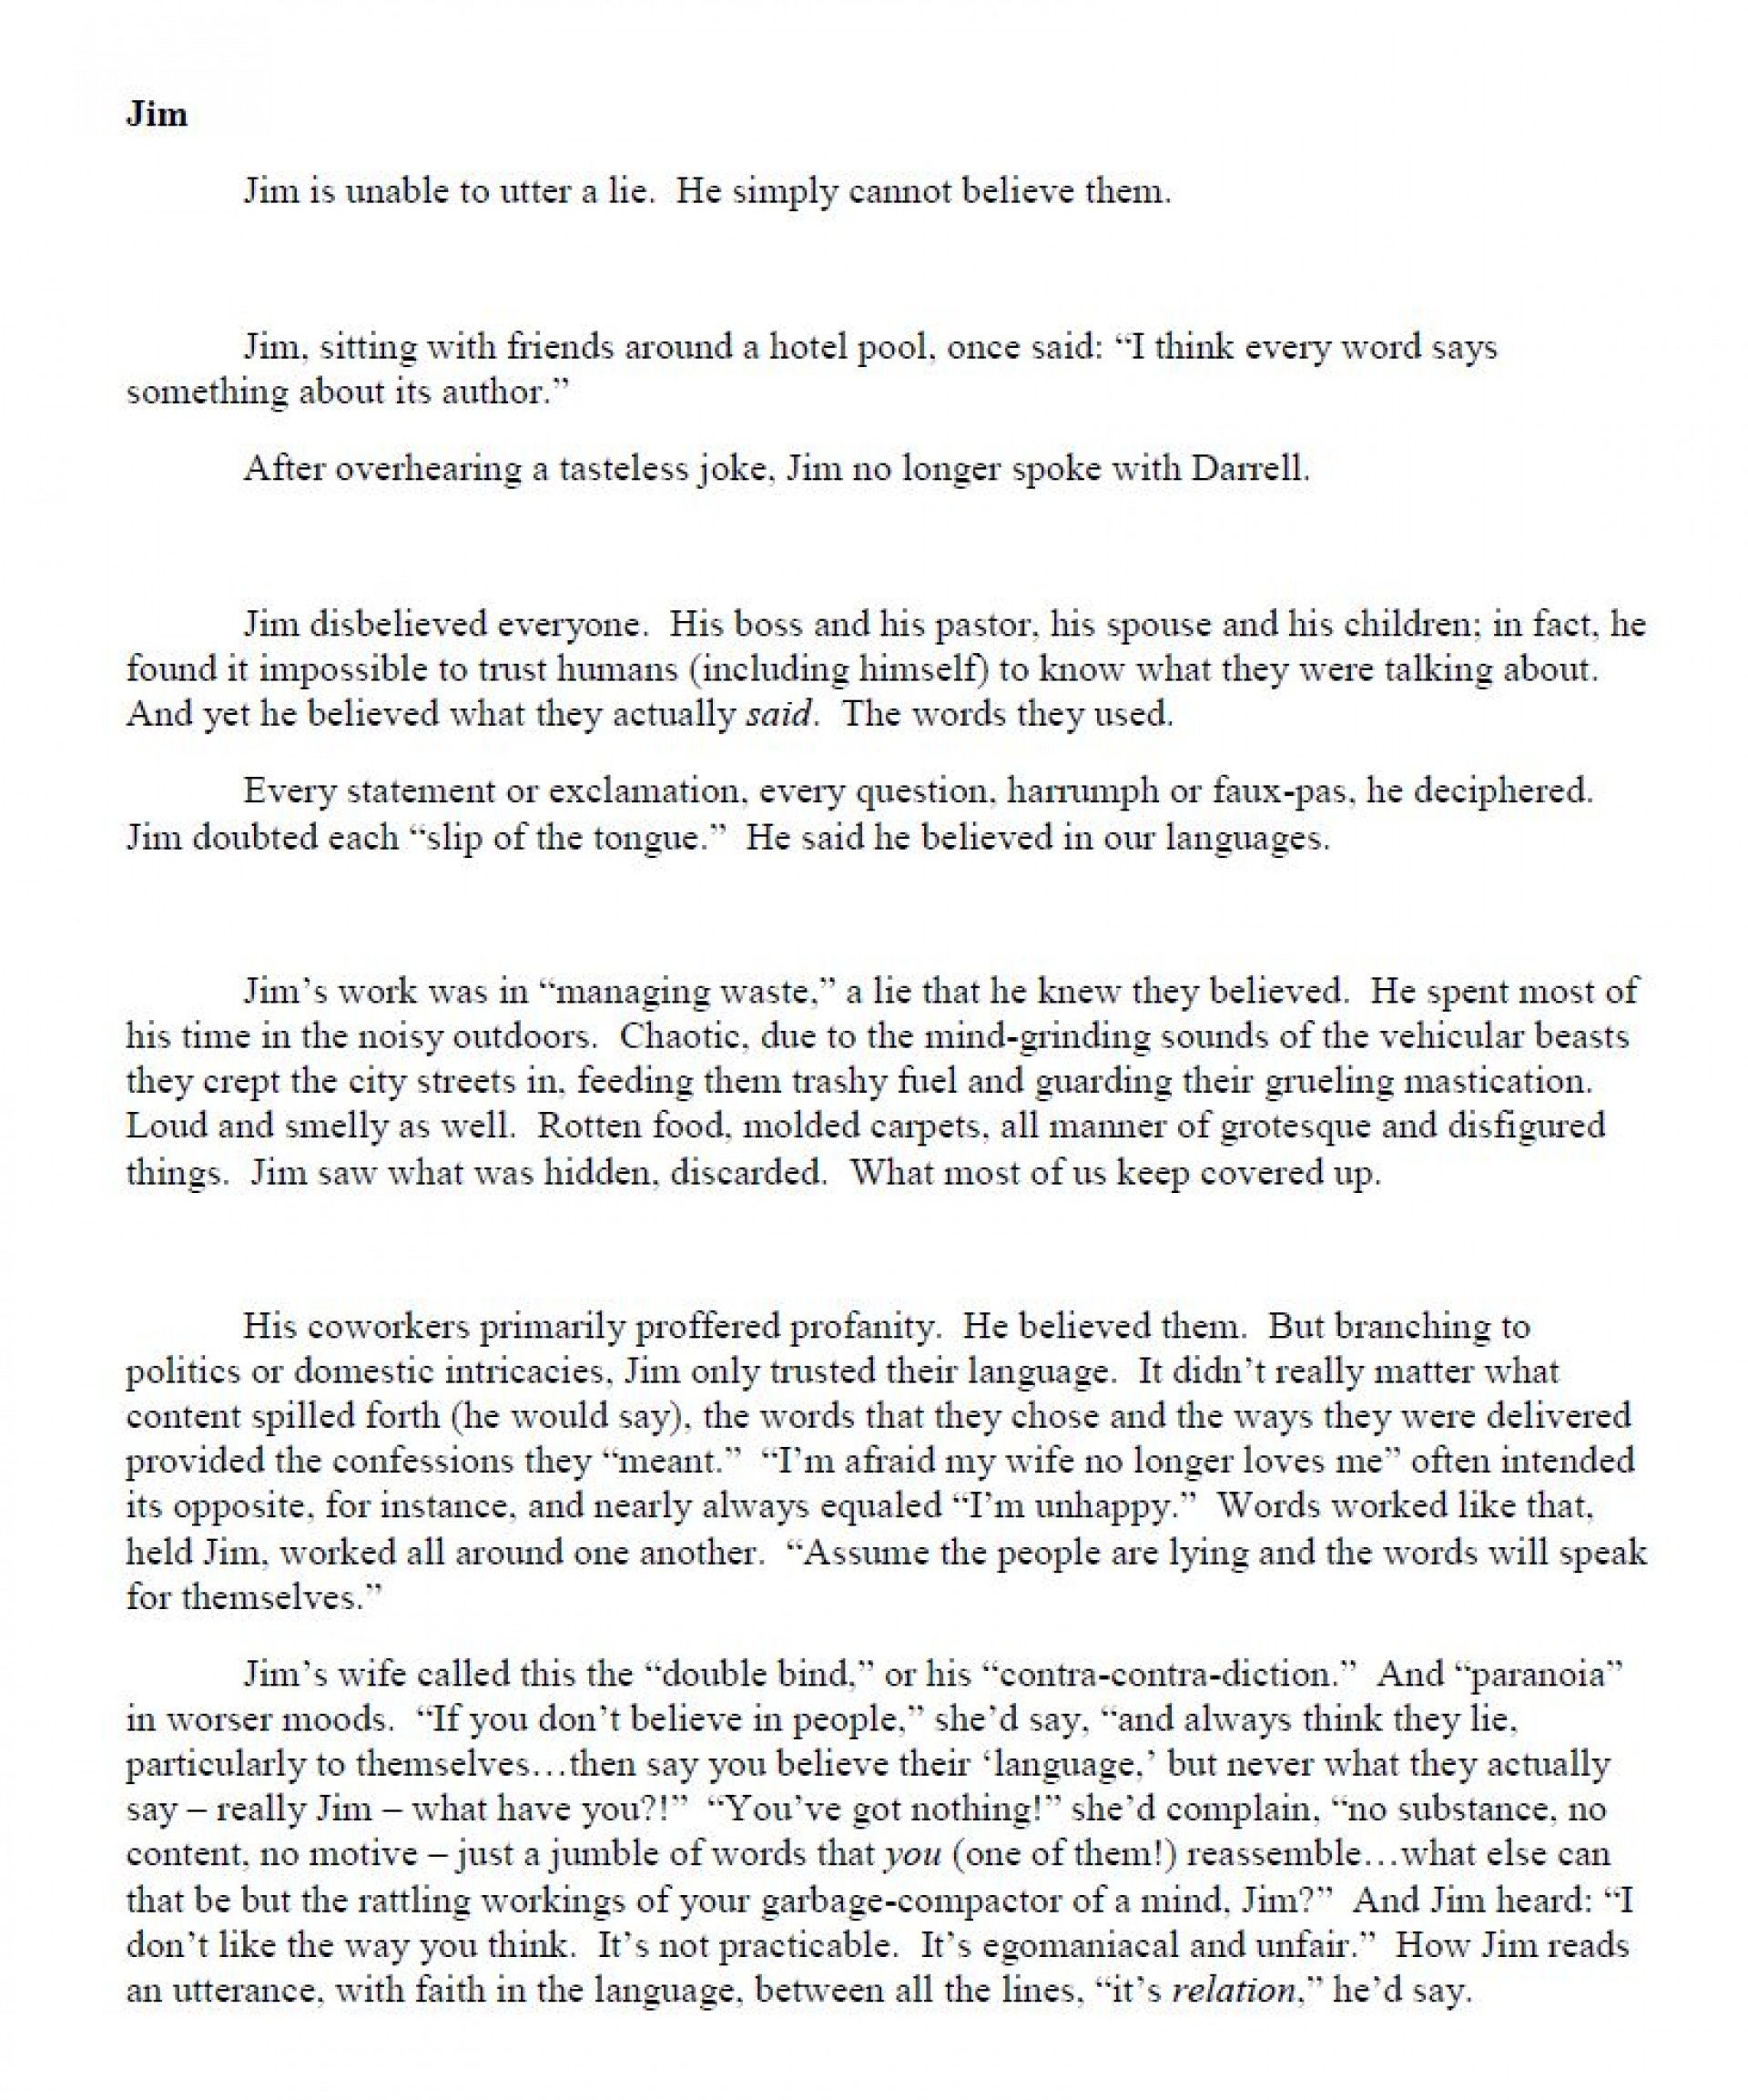 013 Childhood Essay Jim P1 Outstanding My 150 Words Ideas Examples 1920